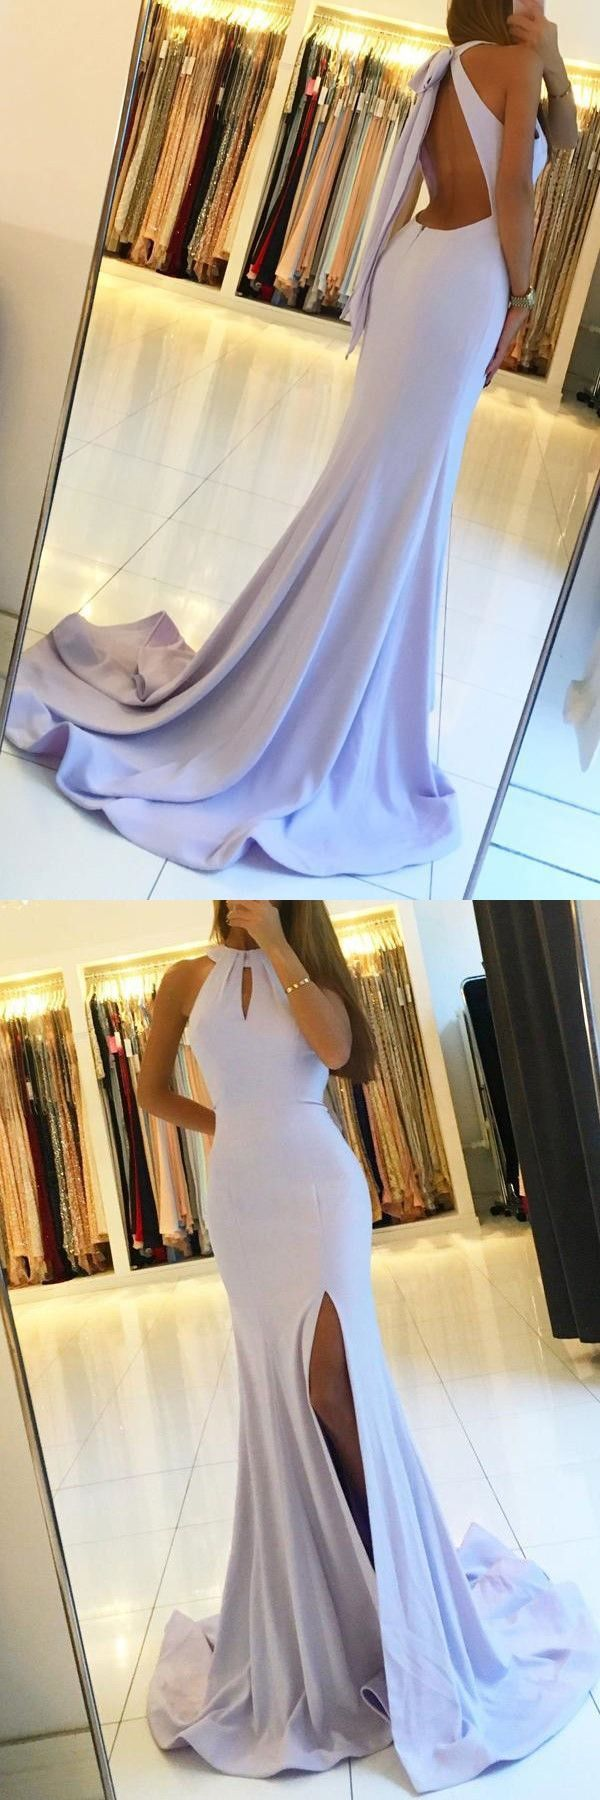 mermaid baby blue prom party dresses with special back, modest key hole evening gowns slit, #dresses #promdresses